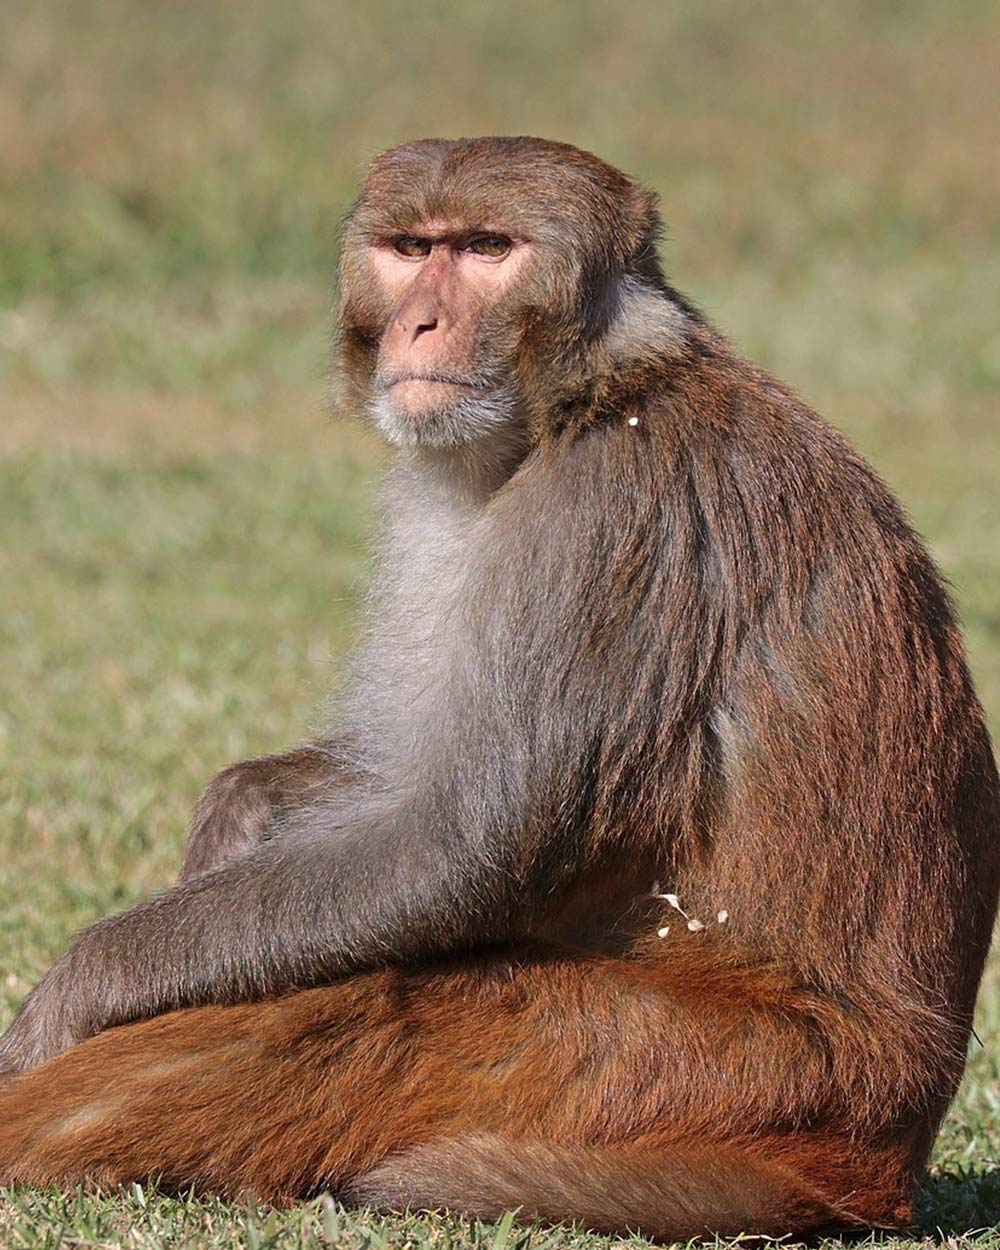 Rhesus Macaques are the most common type of monkey used in vaccine testing.